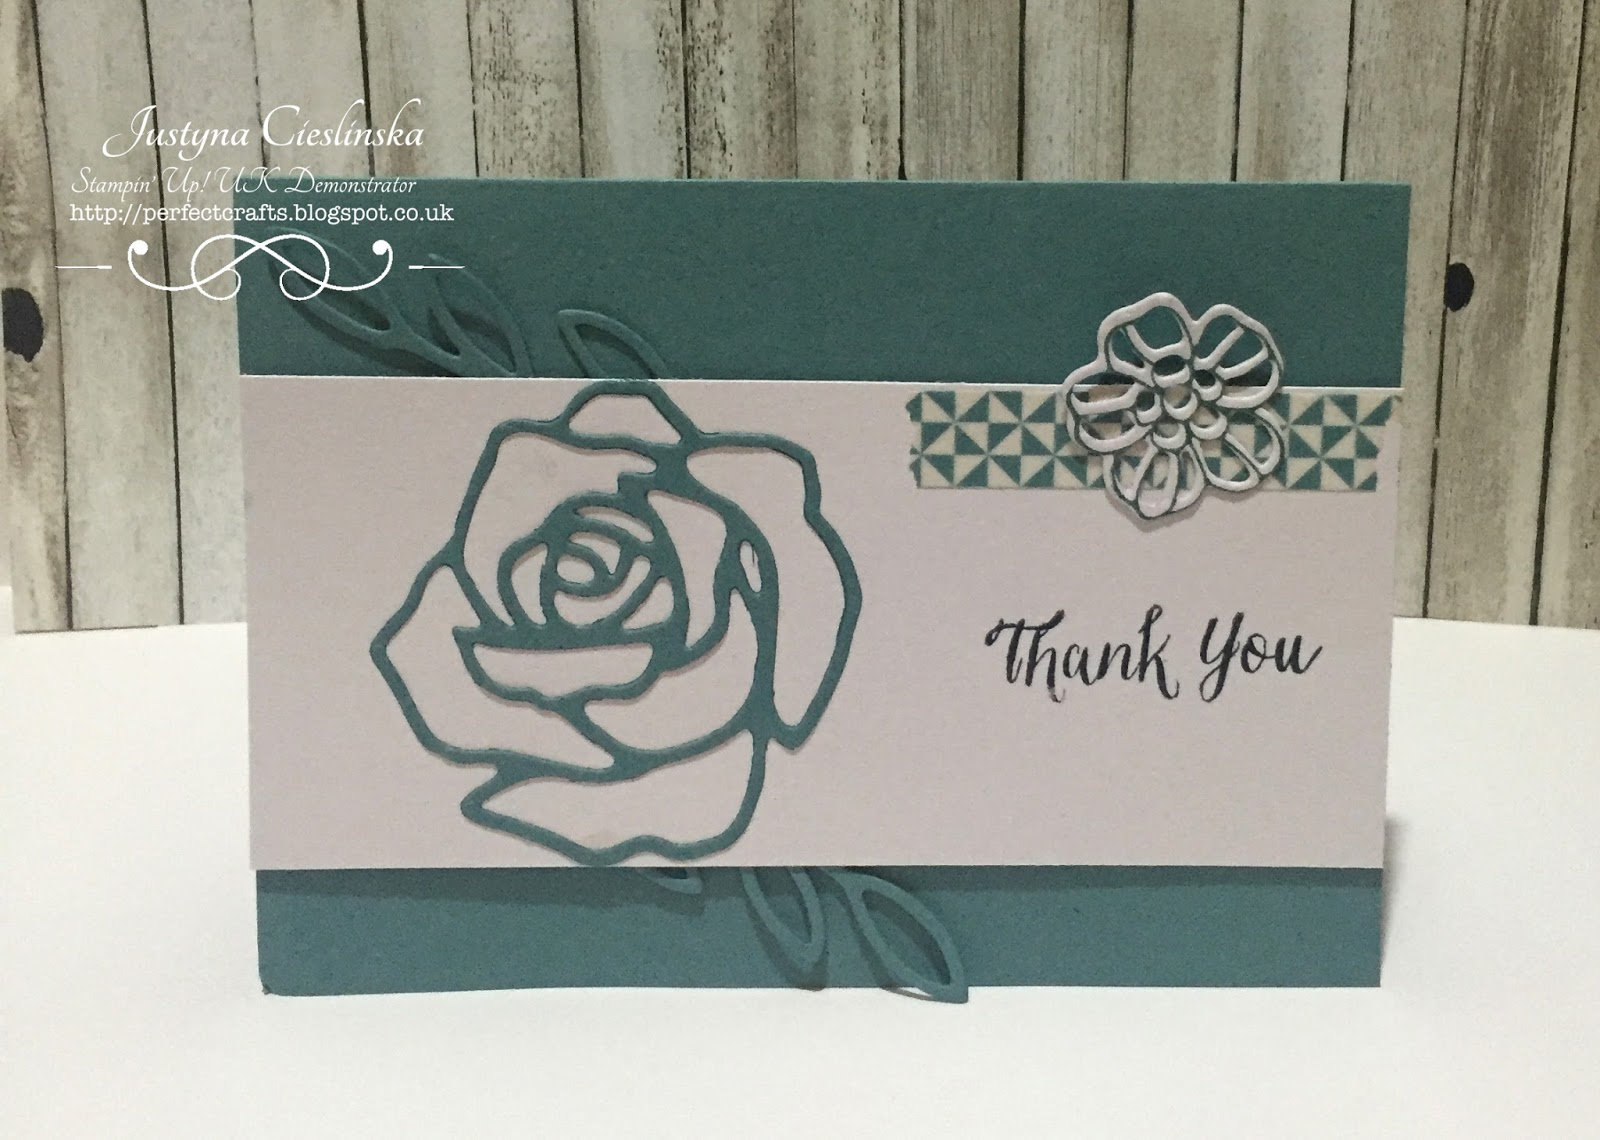 stampin up, stampin up uk, stampin up uk demonstrator